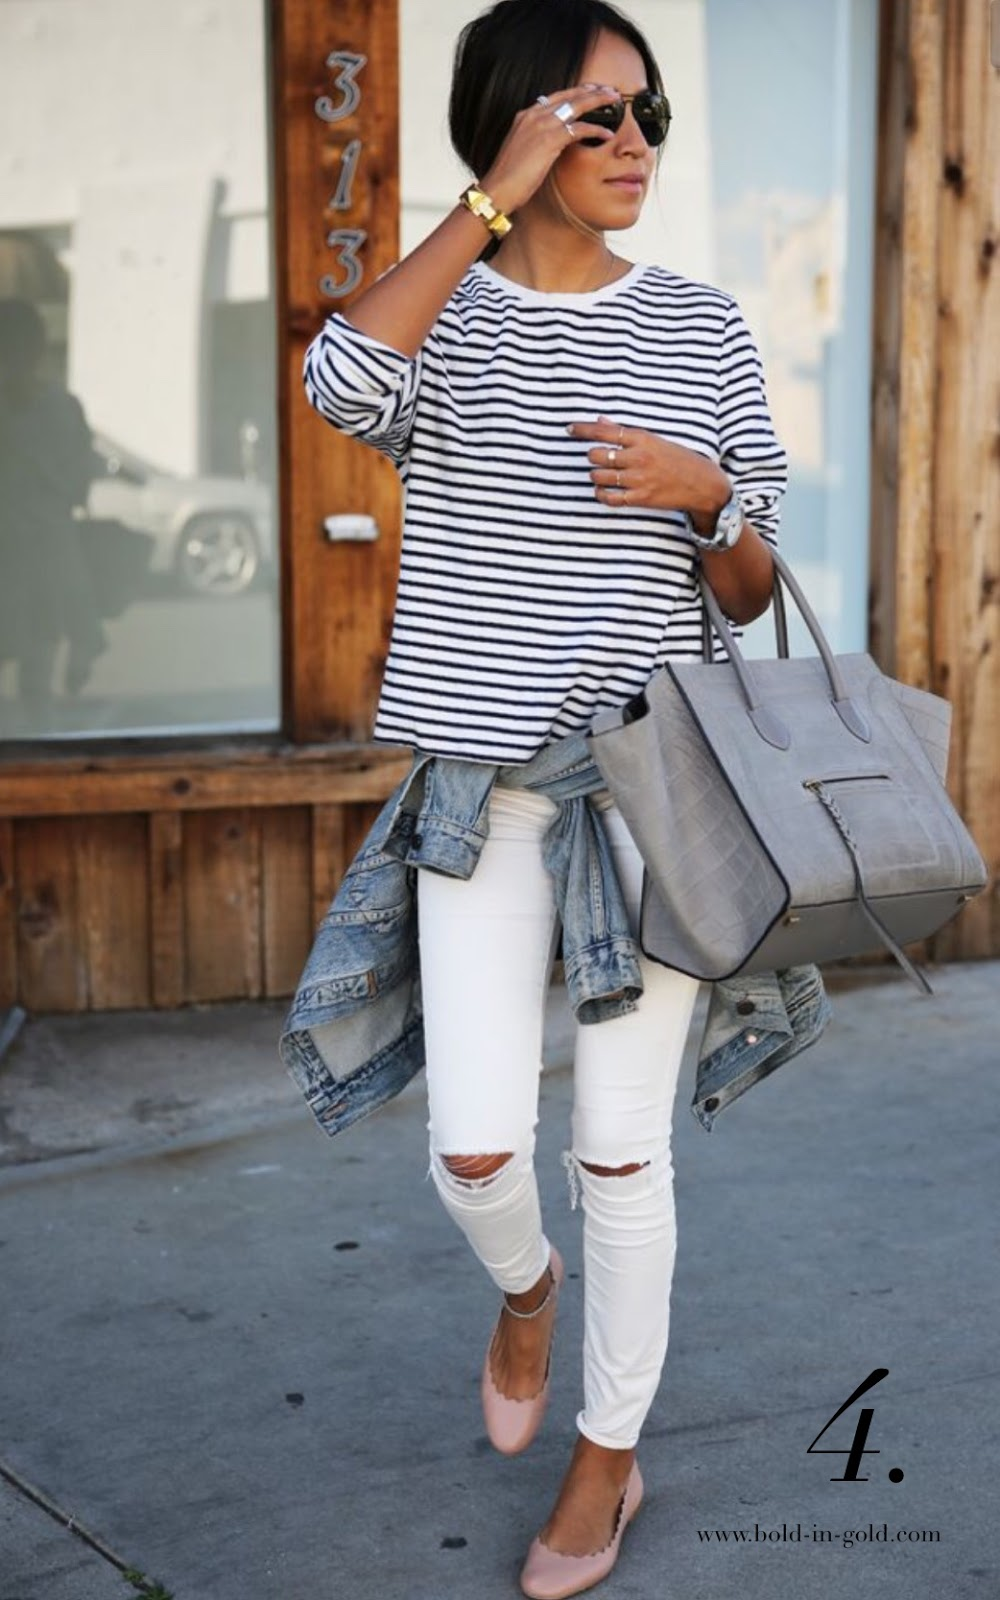 Woman wearing white ripped jeans with a striped t-shirt